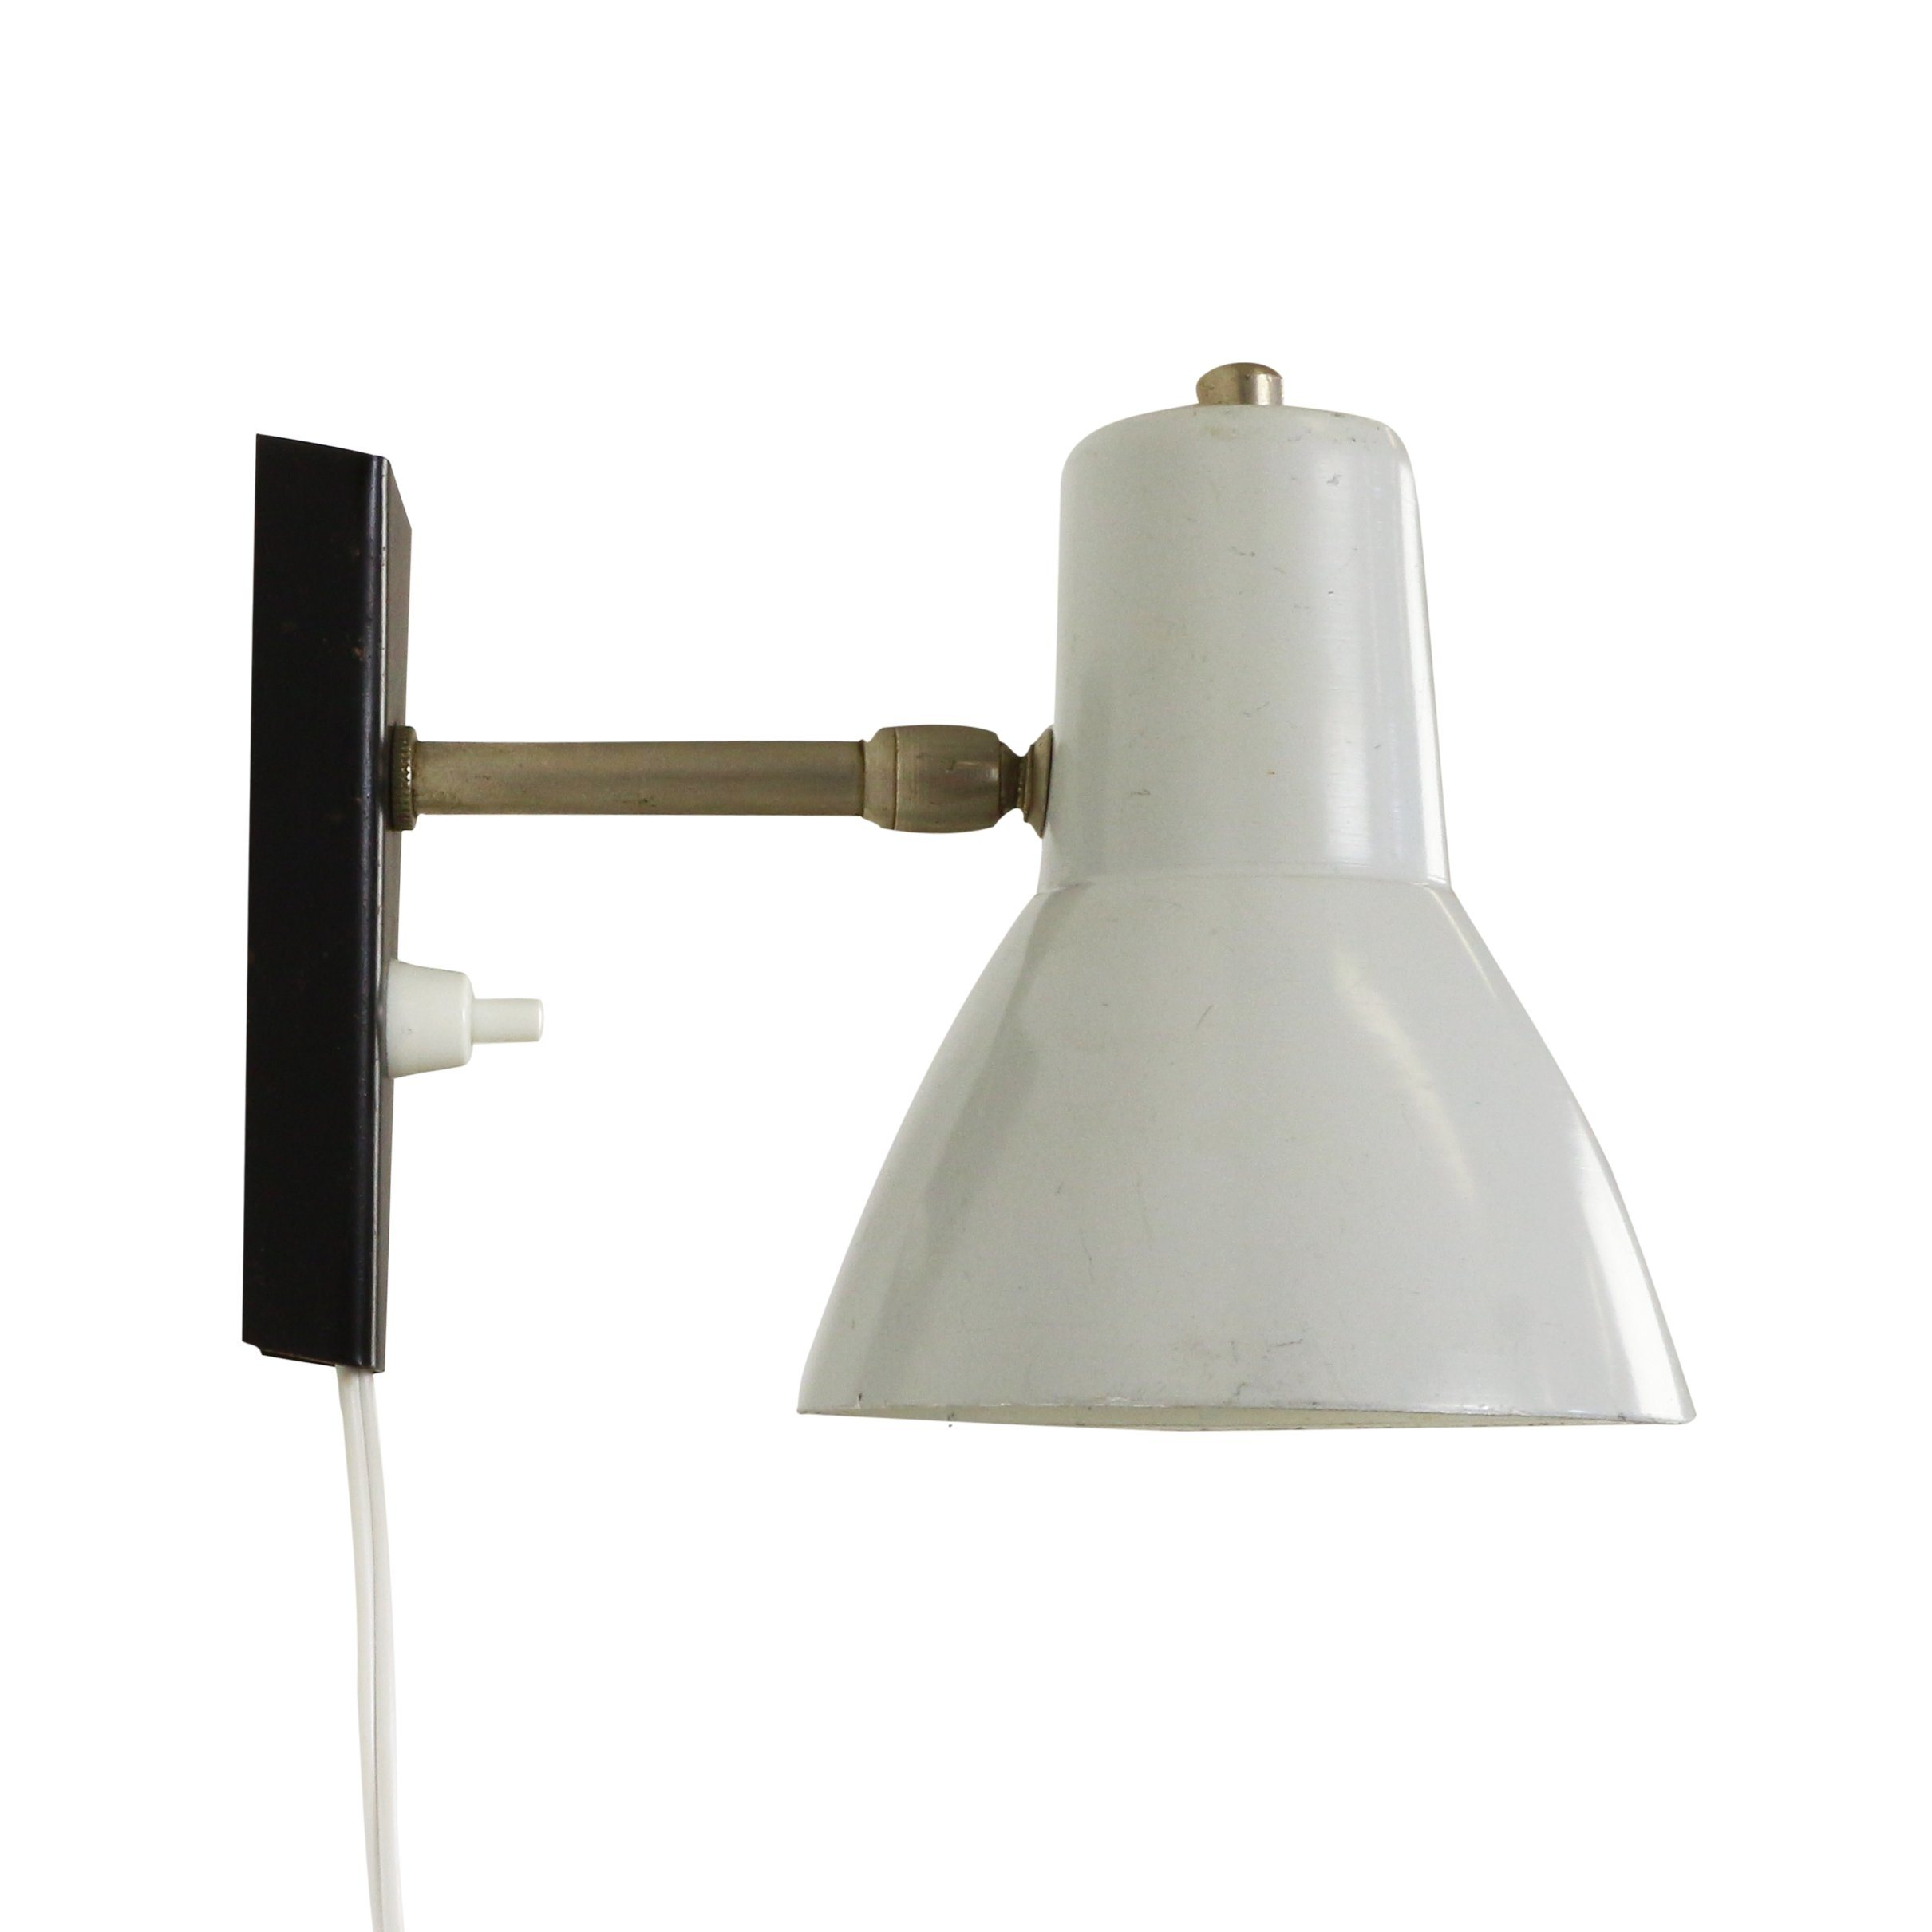 Vintage Grey Wall Lights : Small grey wall light, 1960s #1173